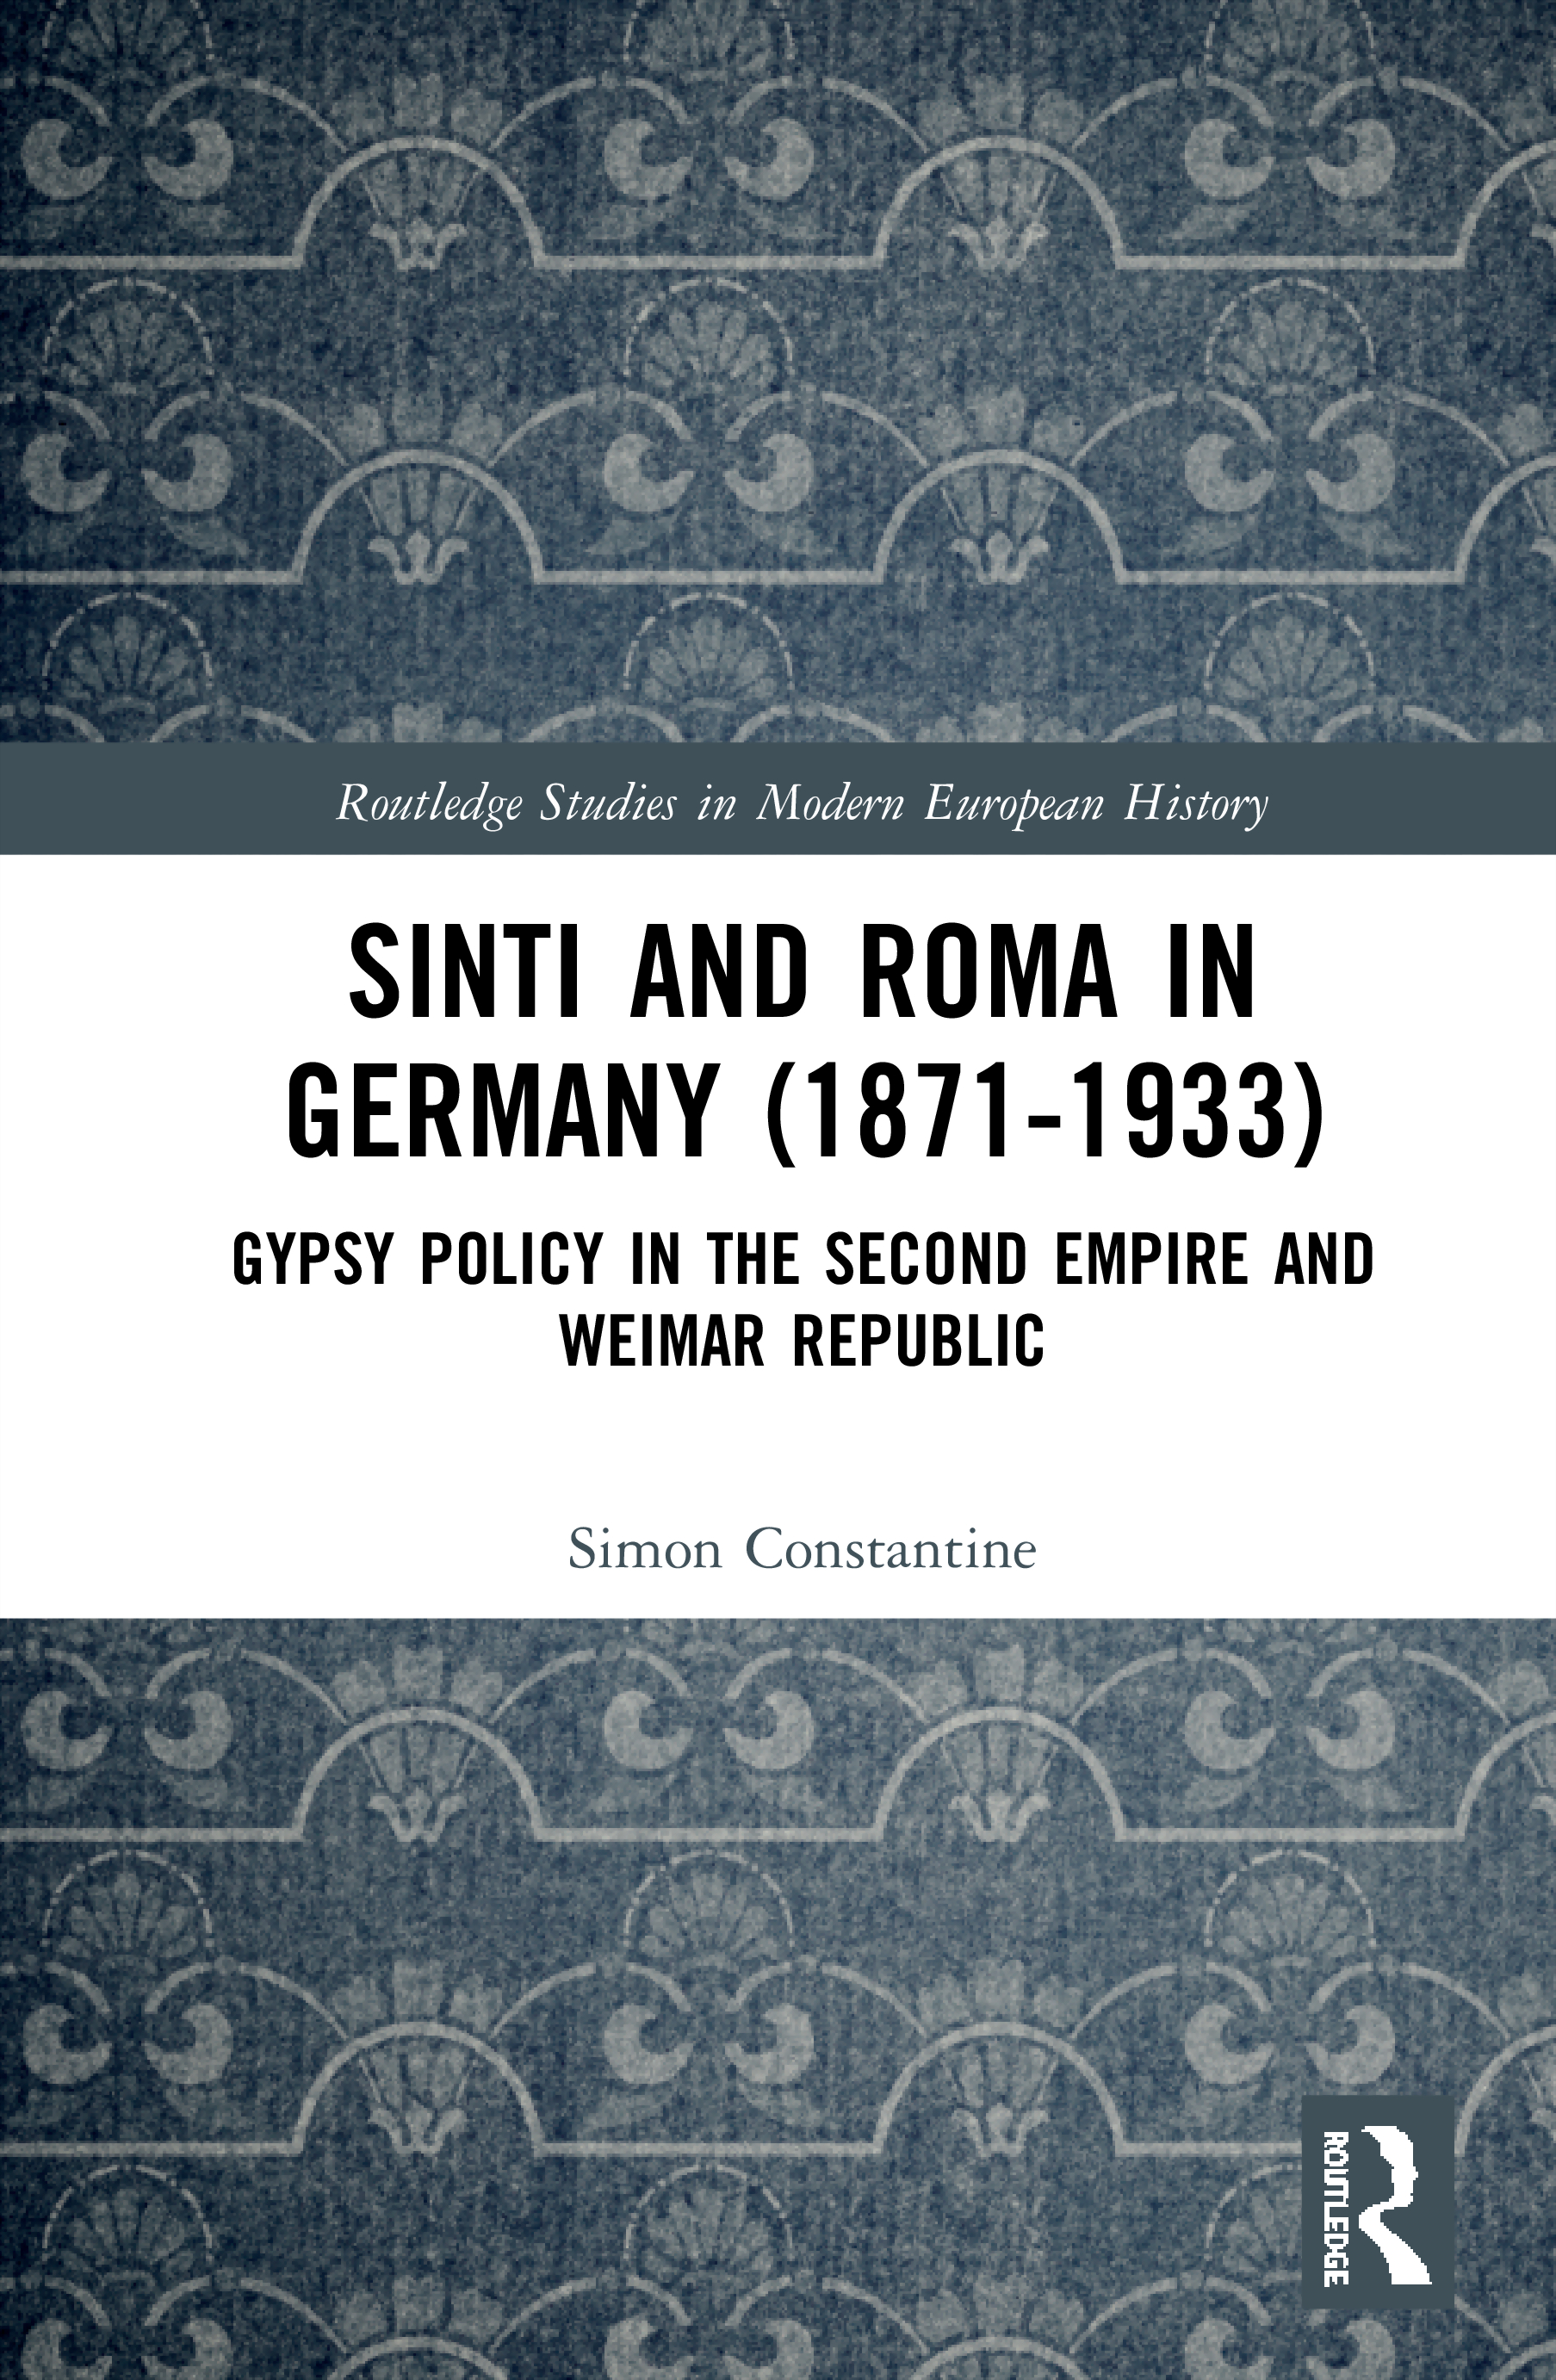 Sinti and Roma in Germany (1871-1933): Gypsy Policy in the Second Empire and Weimar Republic book cover